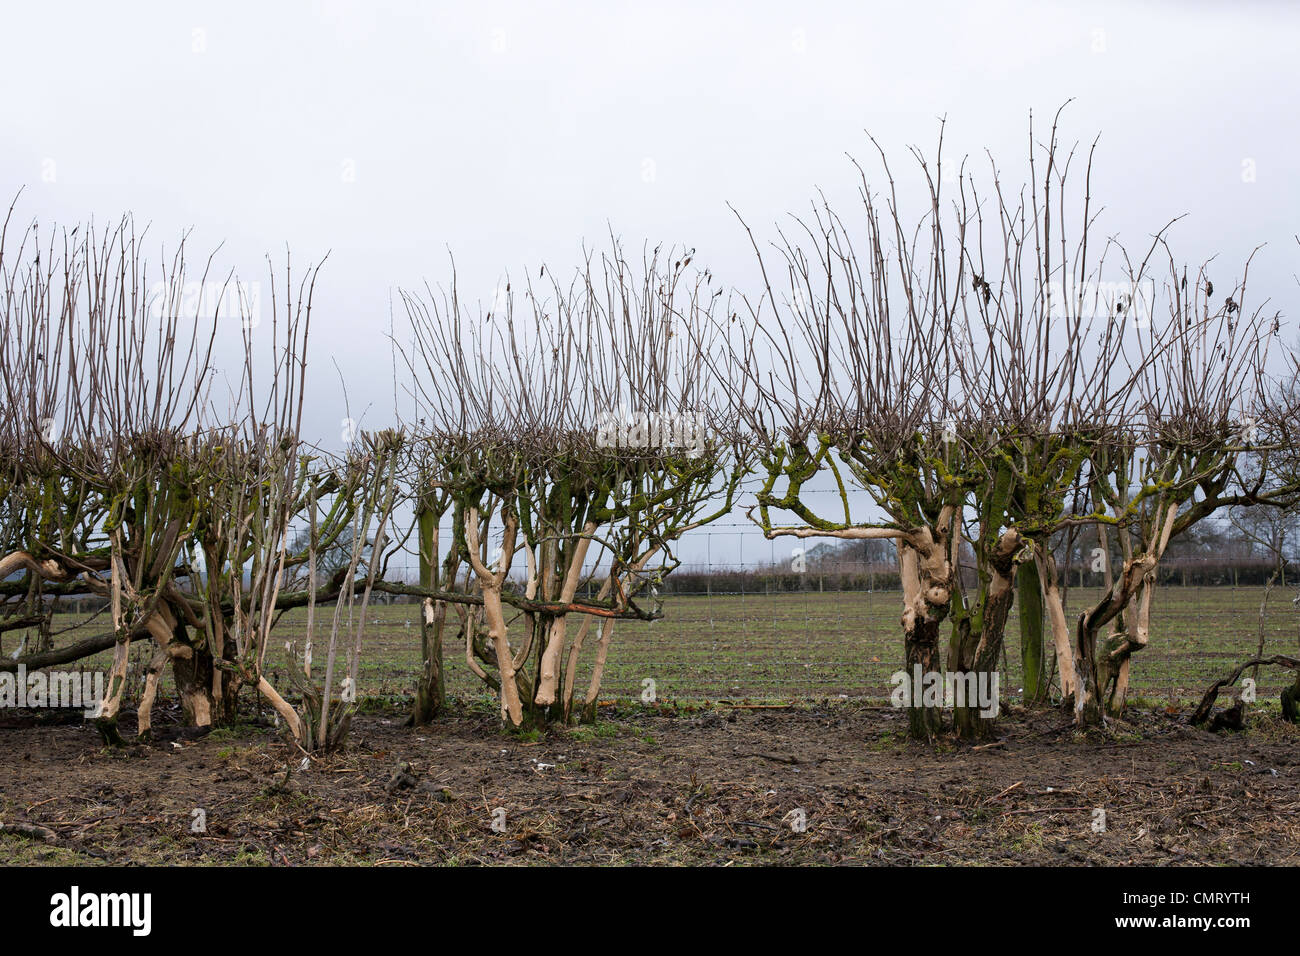 Damaged and neglected hedgerow near Derbyshire. - Stock Image